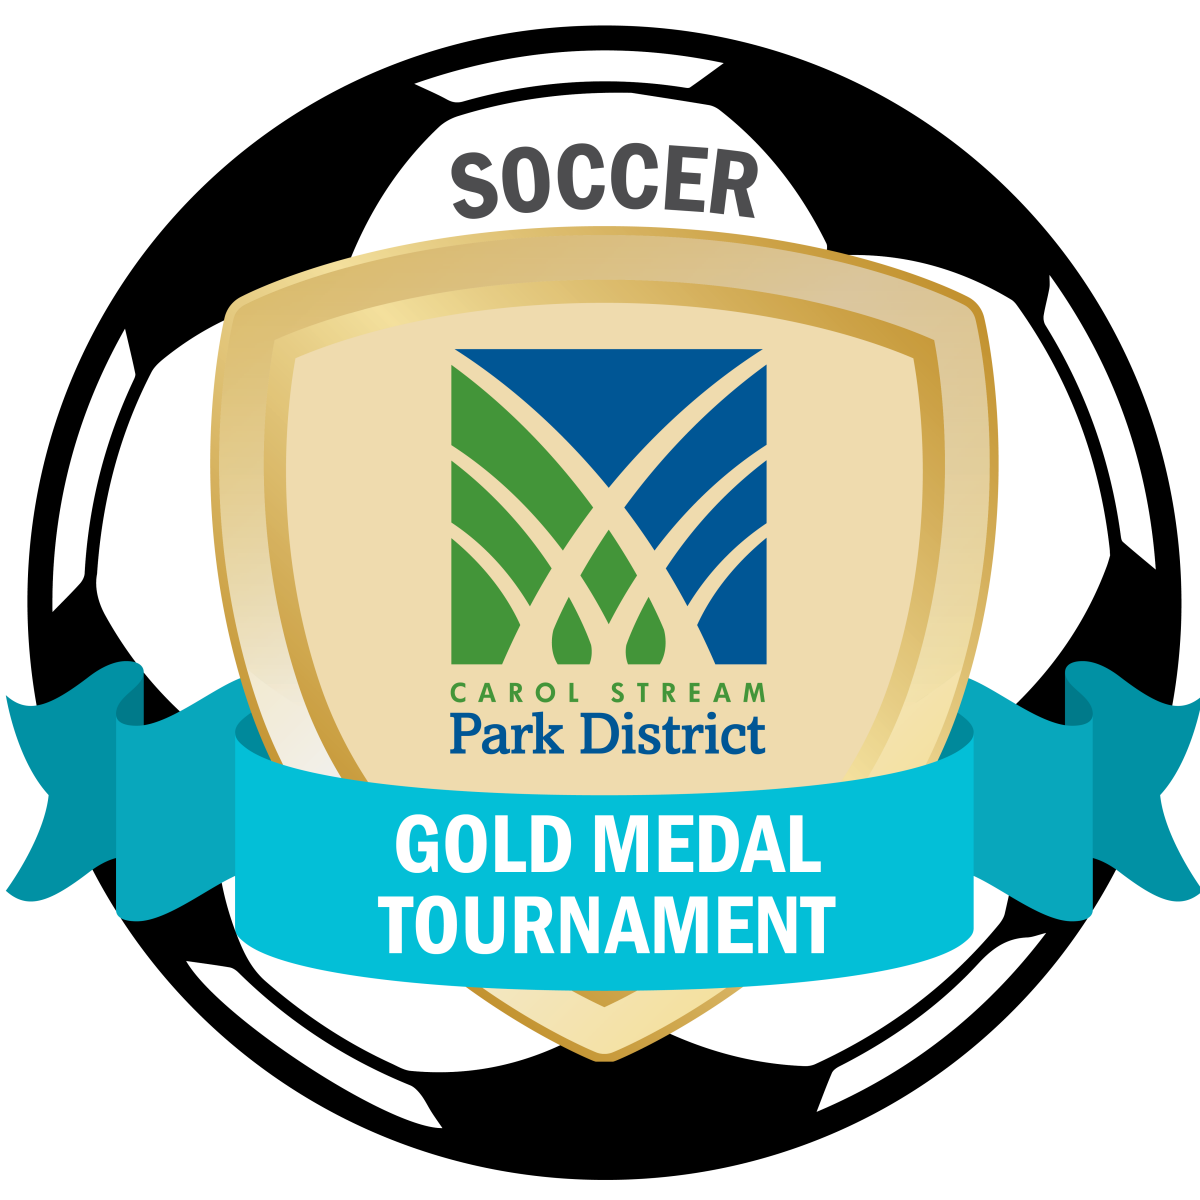 Medal clipart tournament. Medals free on dumielauxepices